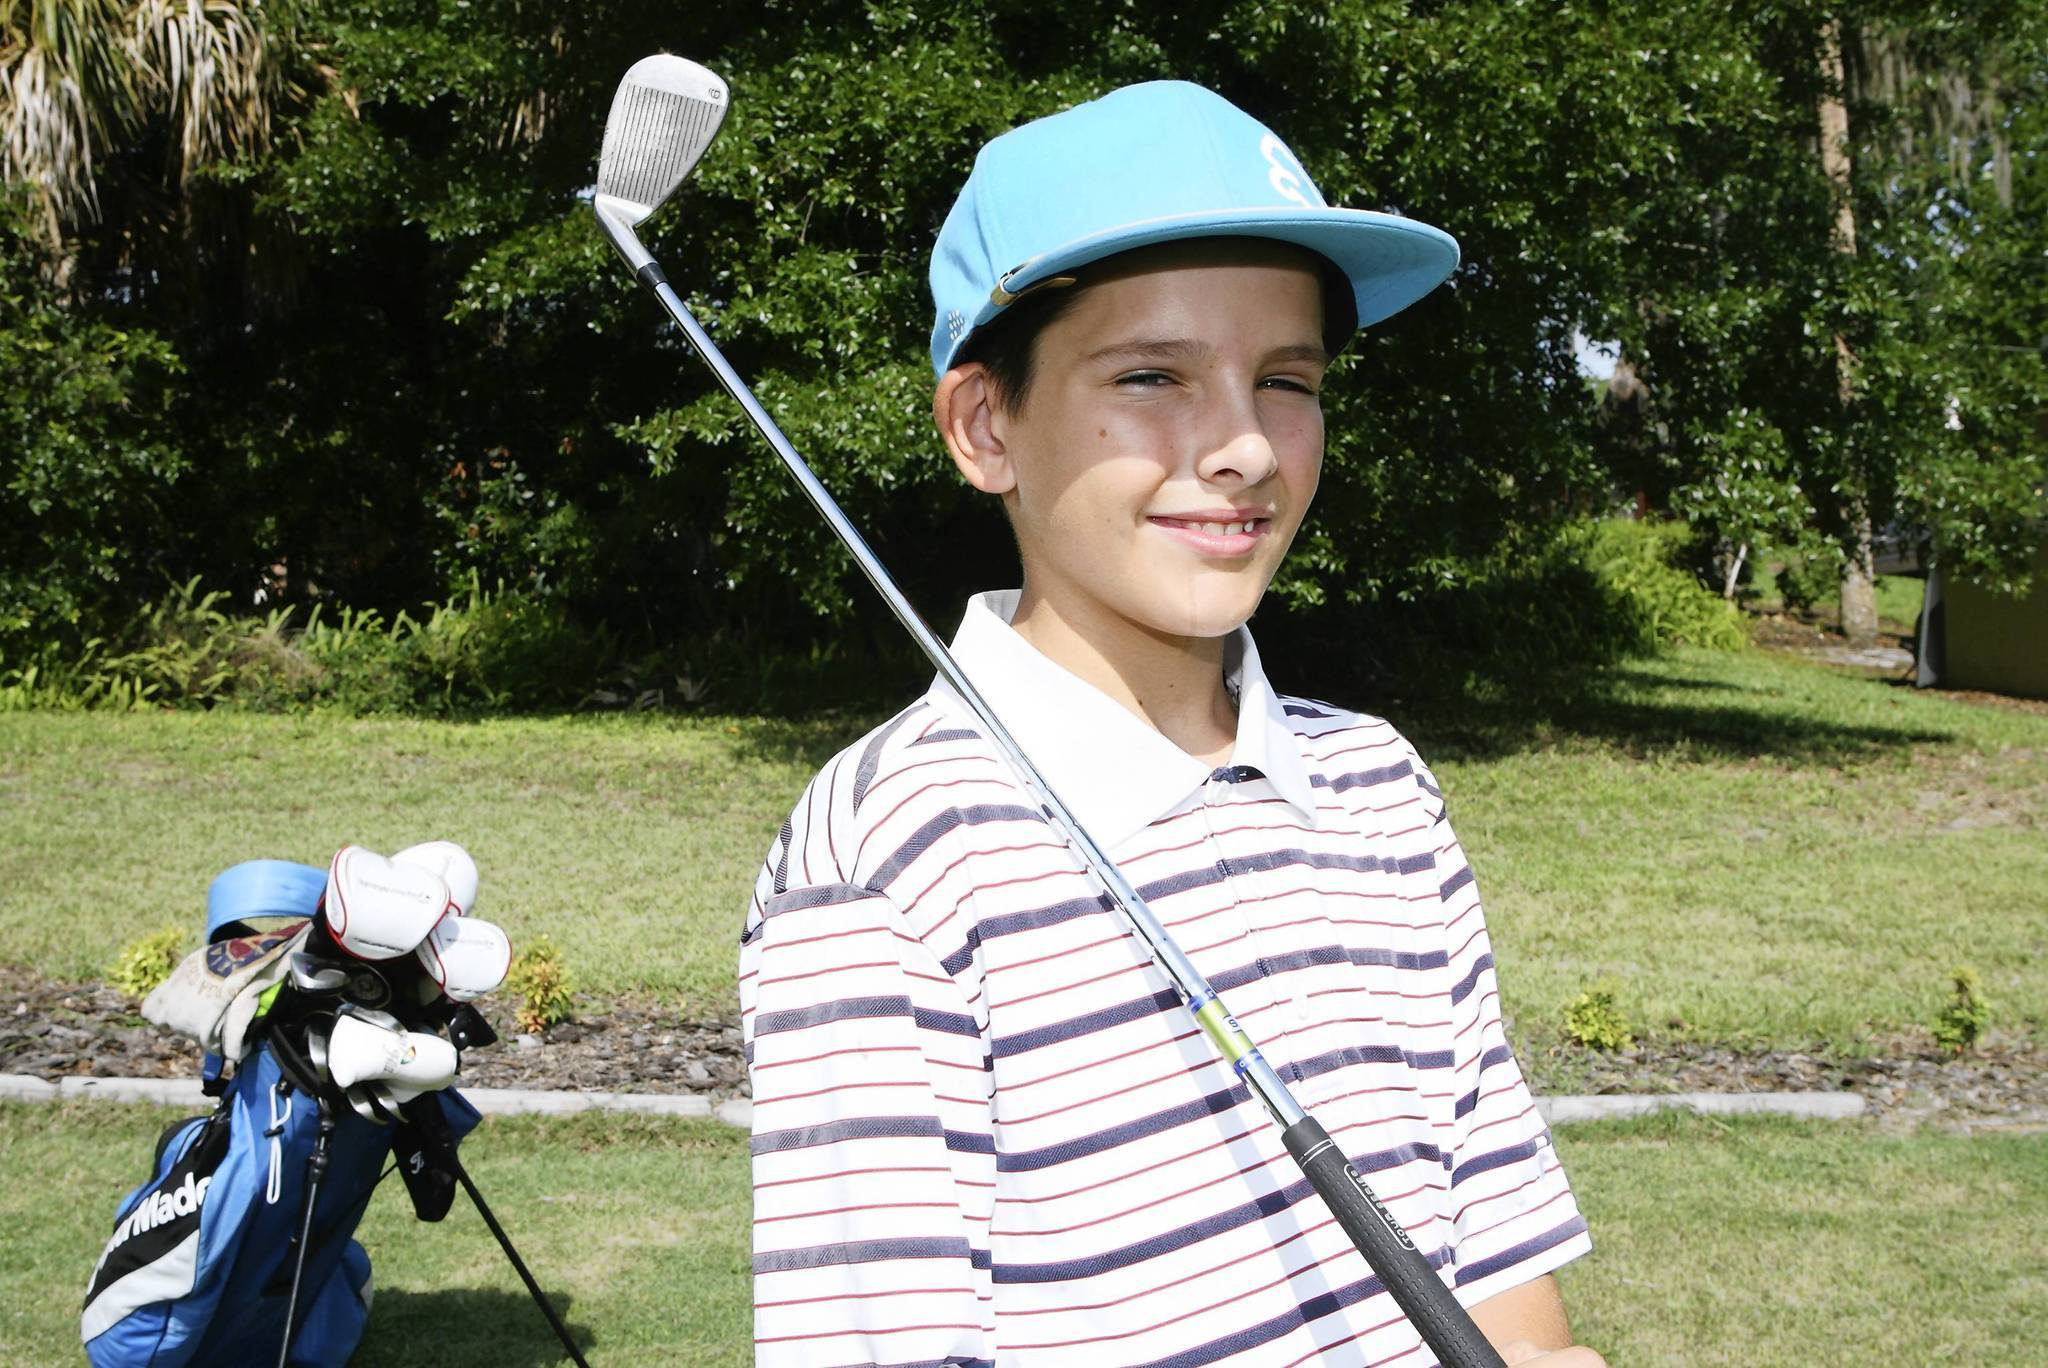 Justin Rickerson is pictured at his Eustis home on Tuesday, June 5, 2012. The 11 year old  shot a hole in one at the Mount Dora County Club. (Tom Benitez/Orlando Sentinel)